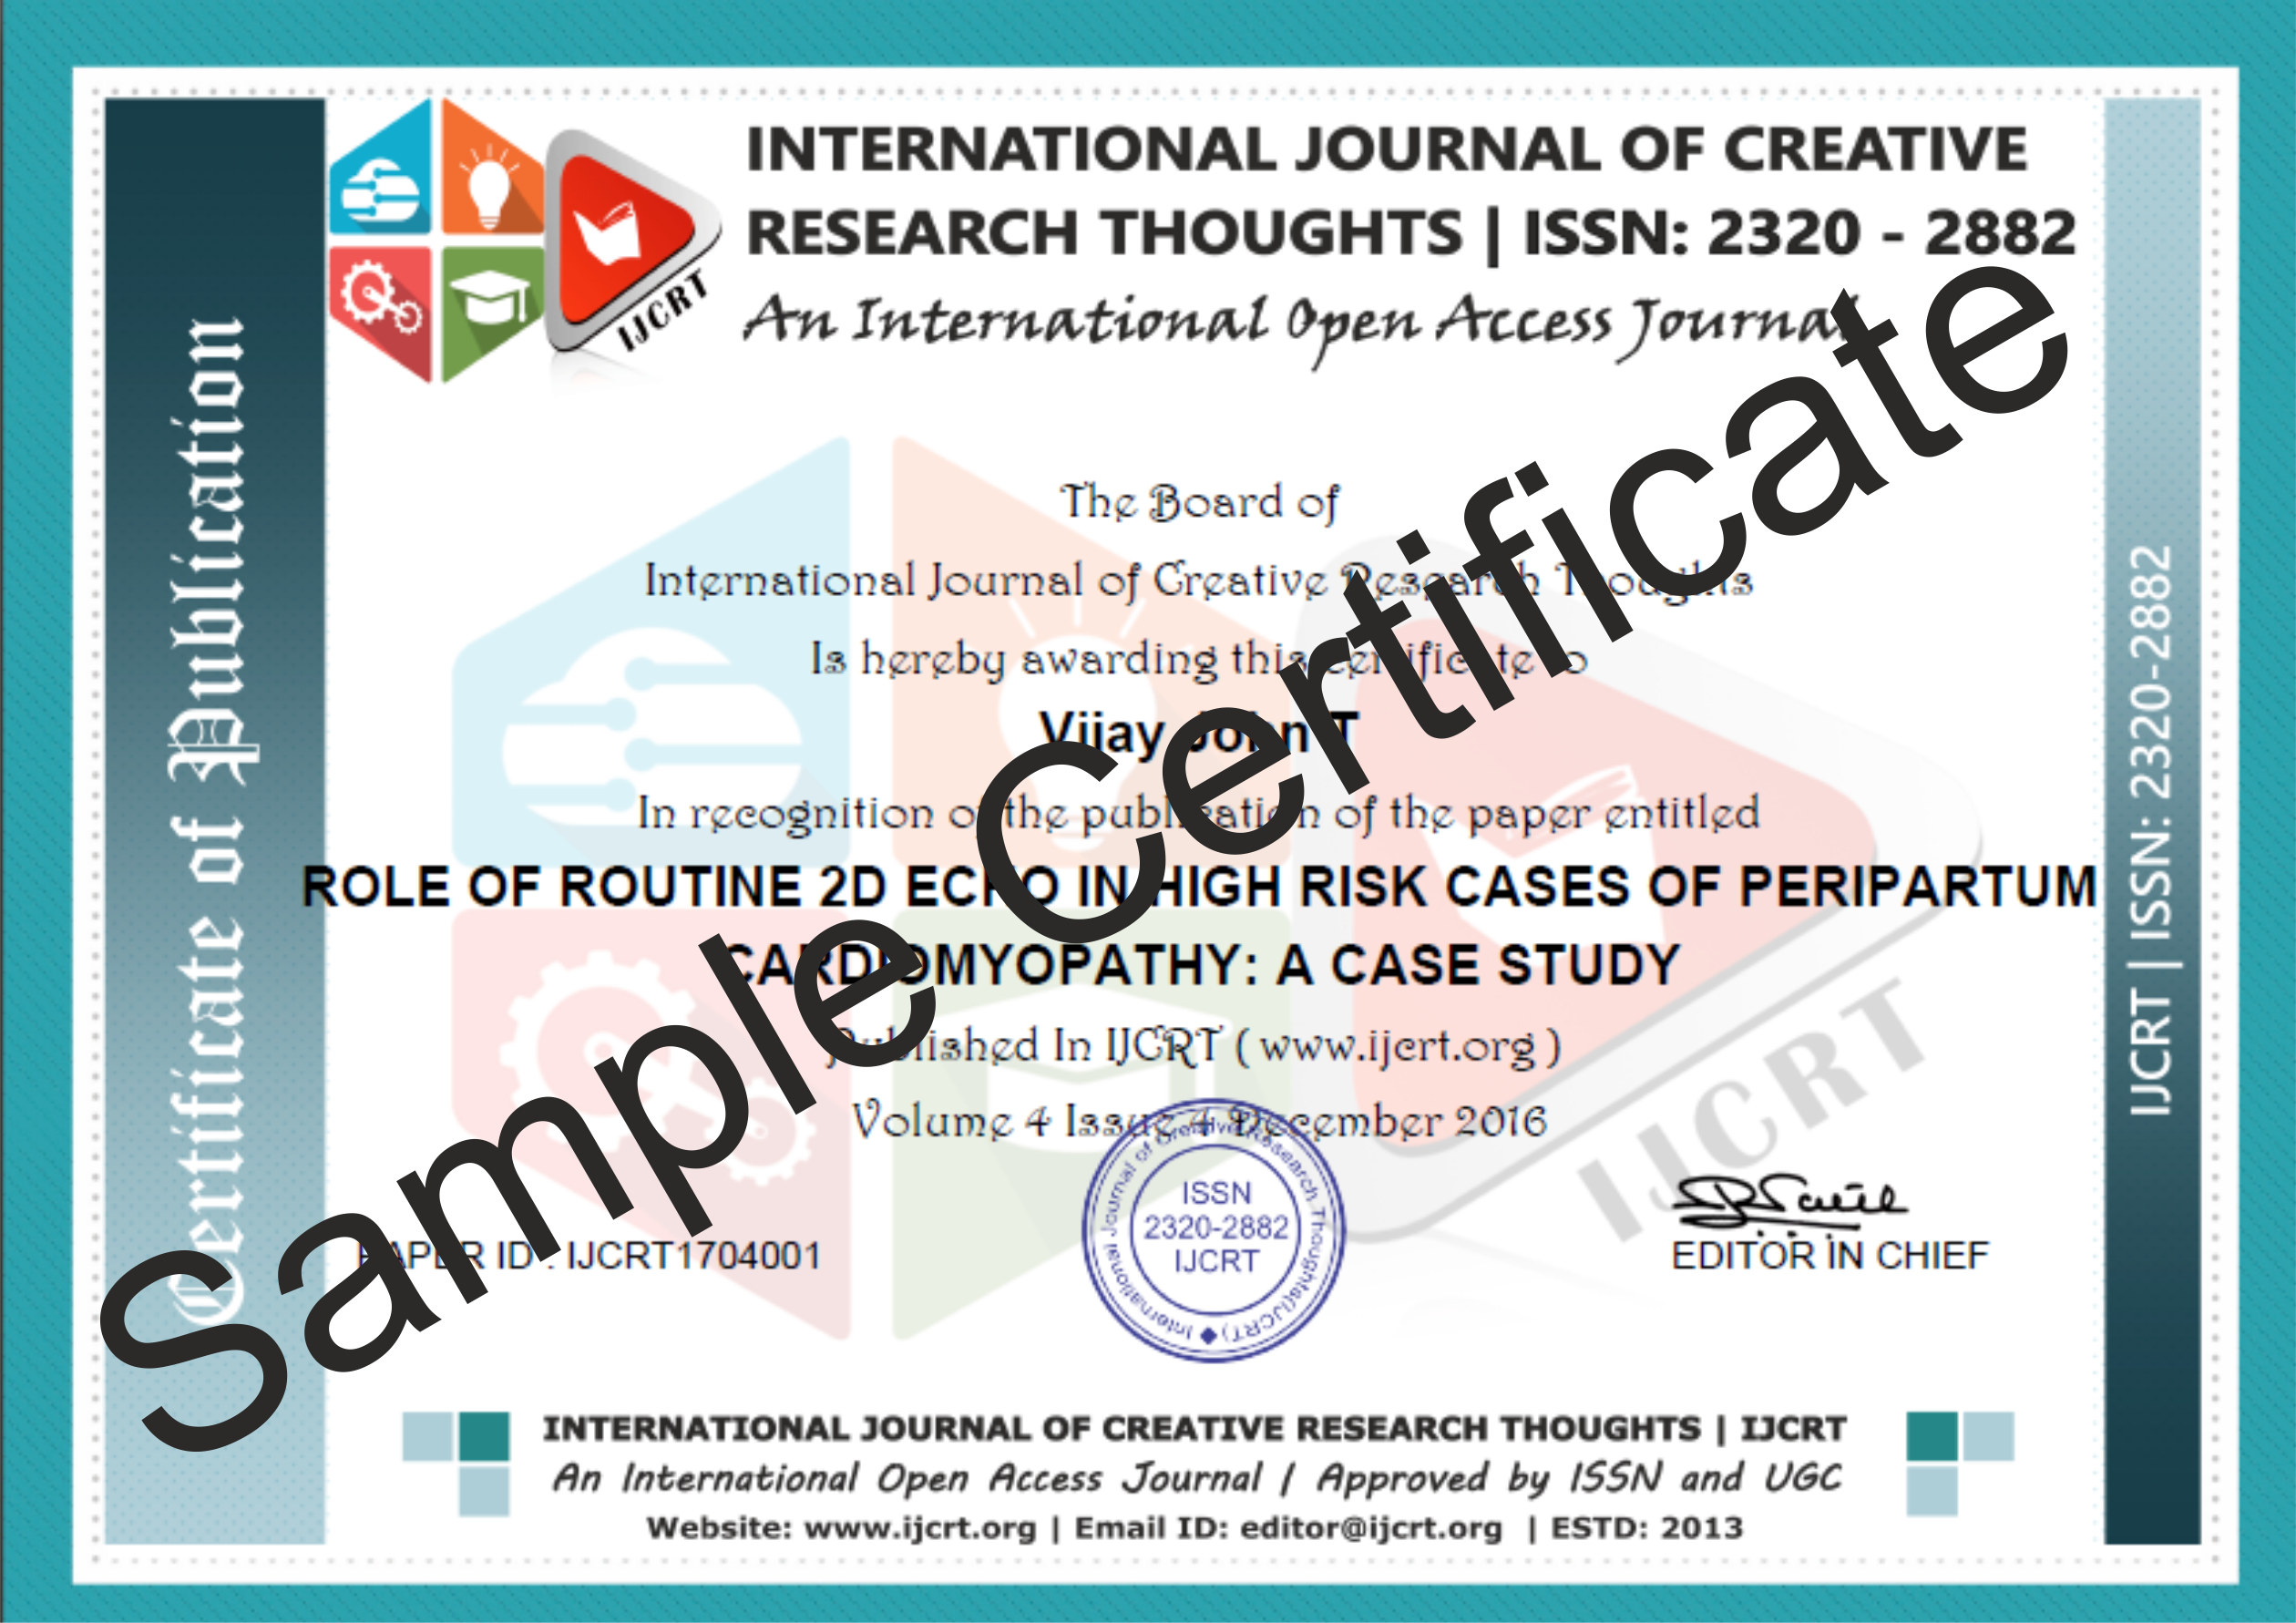 005 Research Paper Sample Certificate Free Online Astounding Publication Full